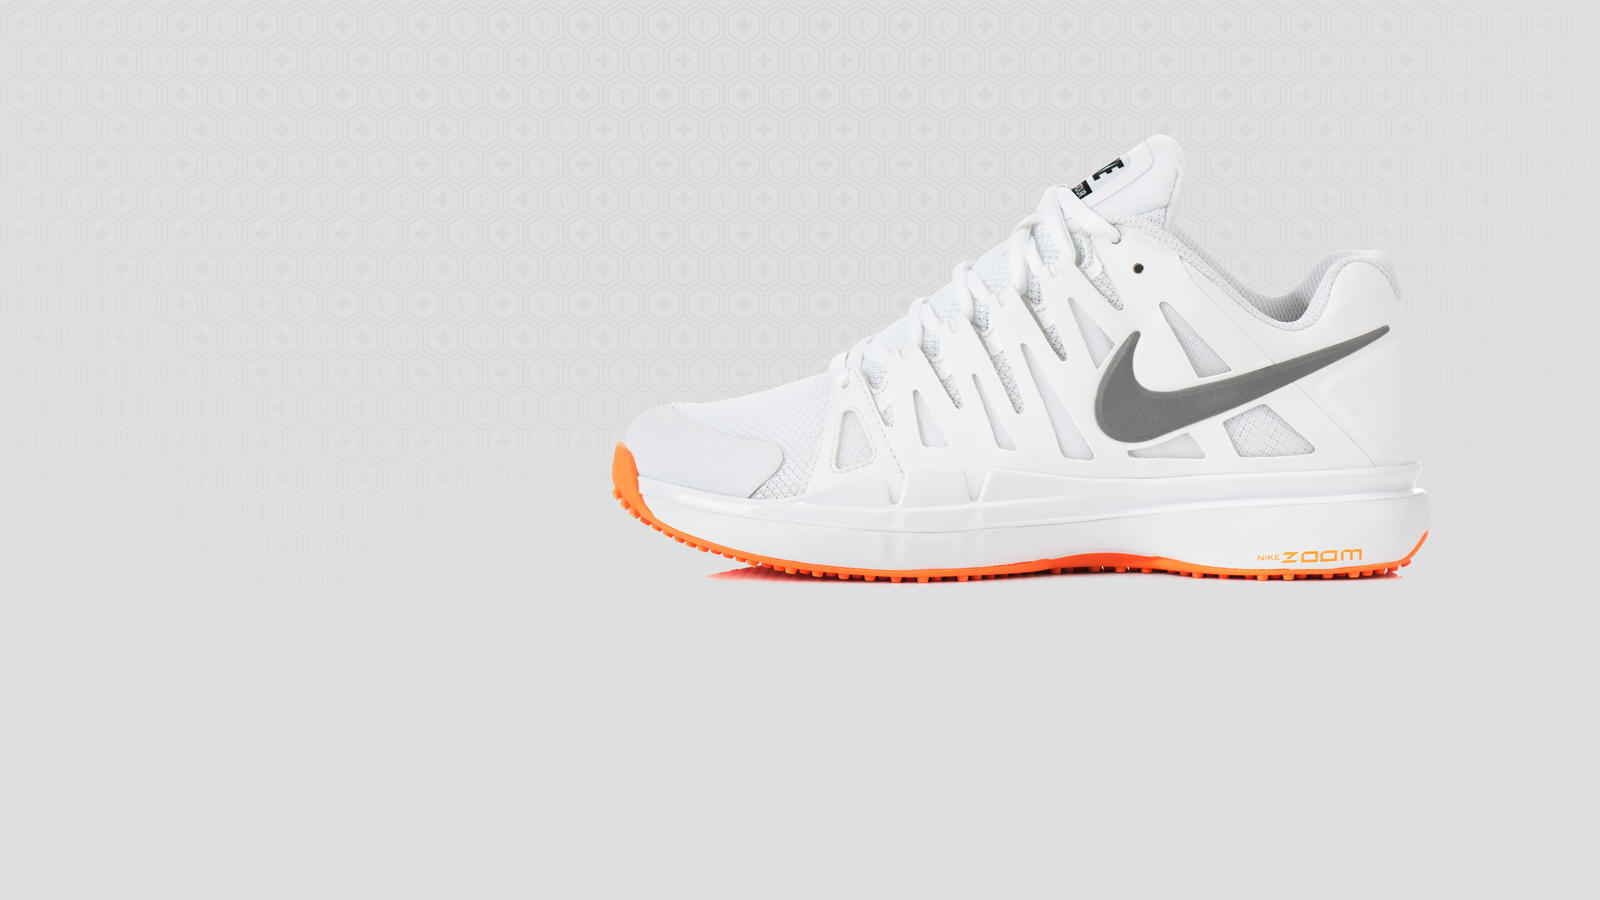 b1f6e1f05a4d Roger Federer Pushes Boundaries in New NIKE ZOOM VAPOR 9 TOUR LE ...